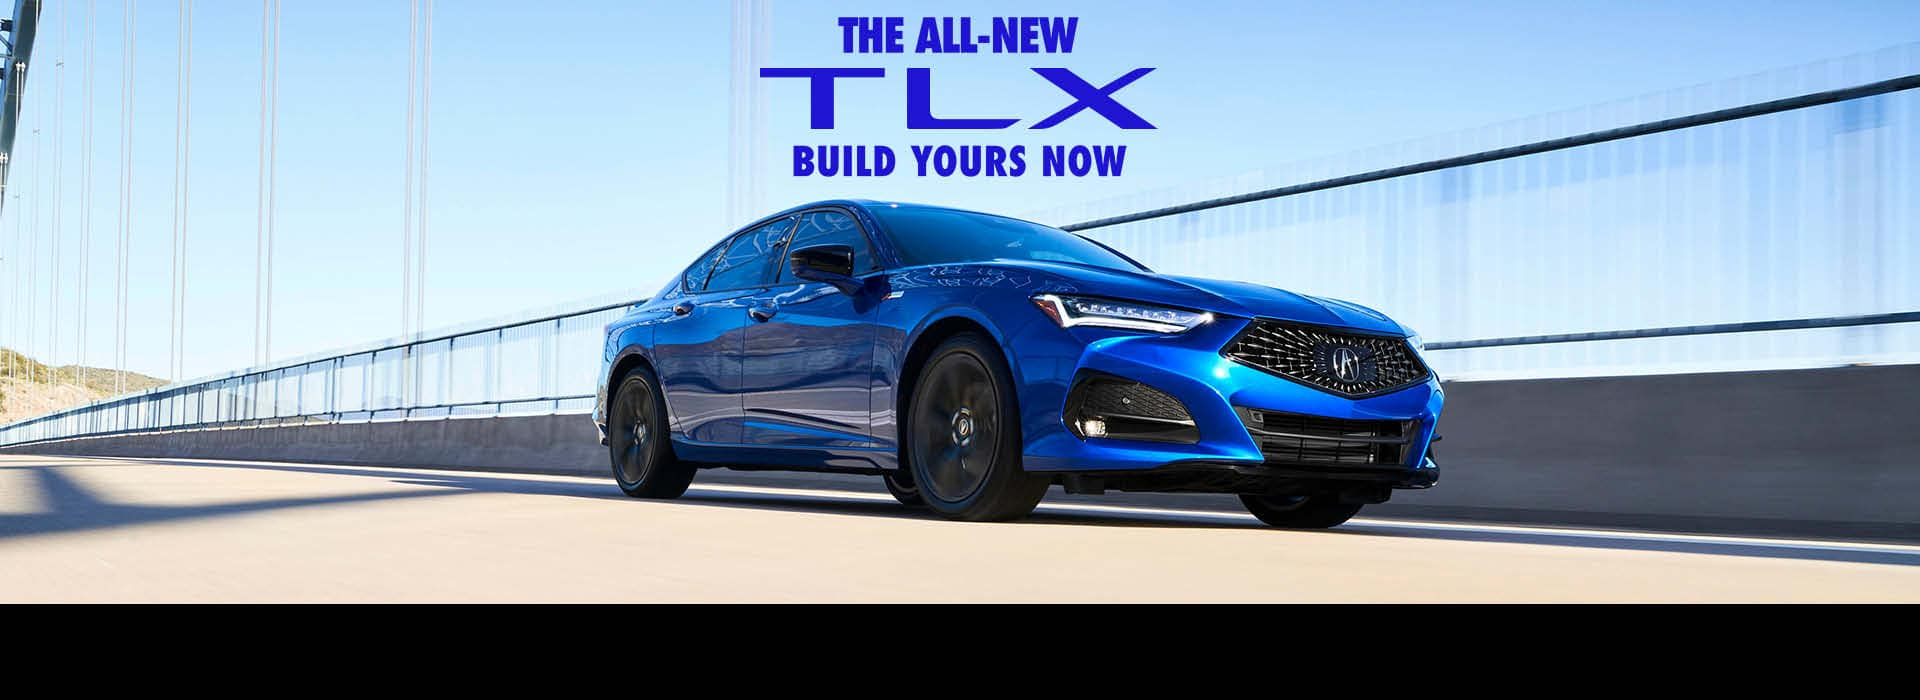 Acura_Home_Page_TLX_Desktop_Banner_Oct2020